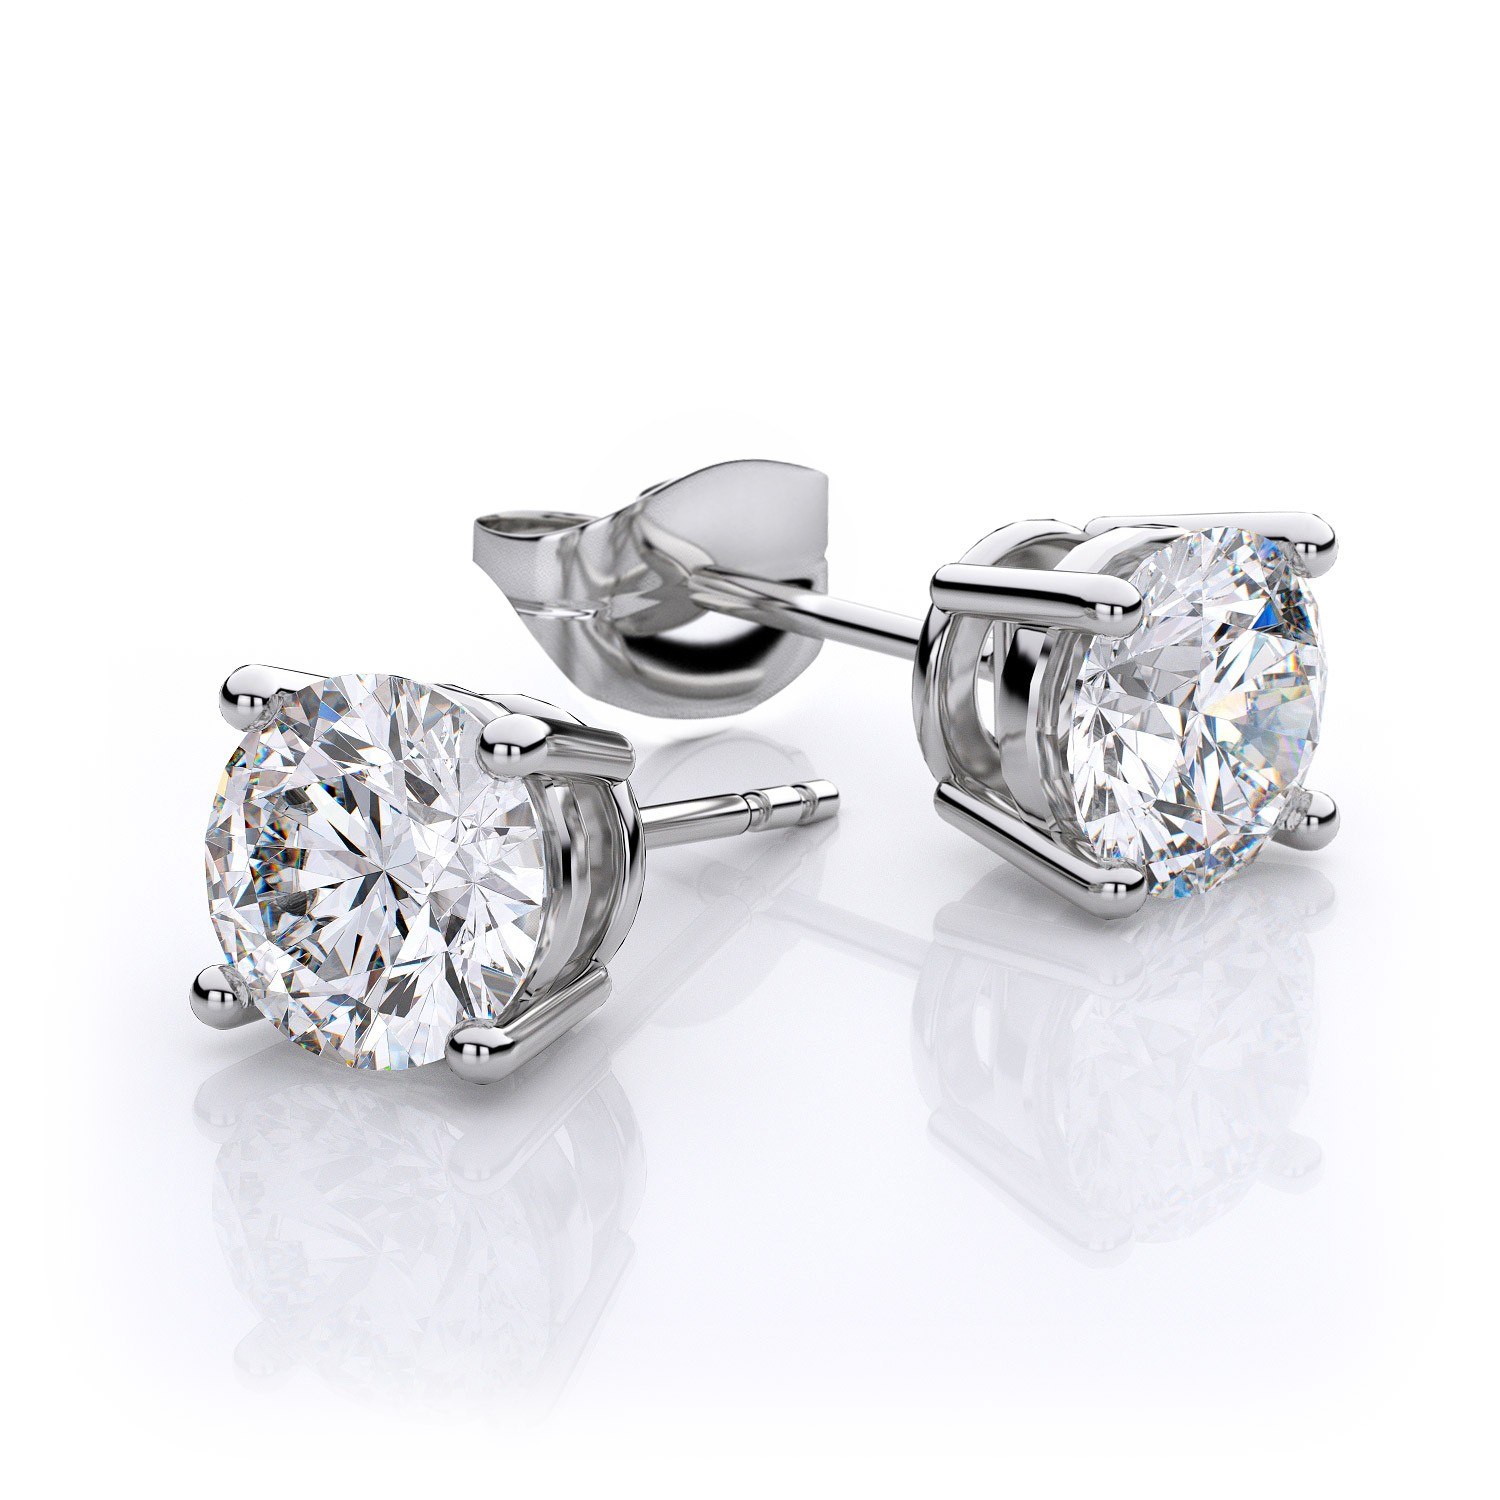 with styleskier choice com earring de beers diamond stud earrings aura gptkajj as go of